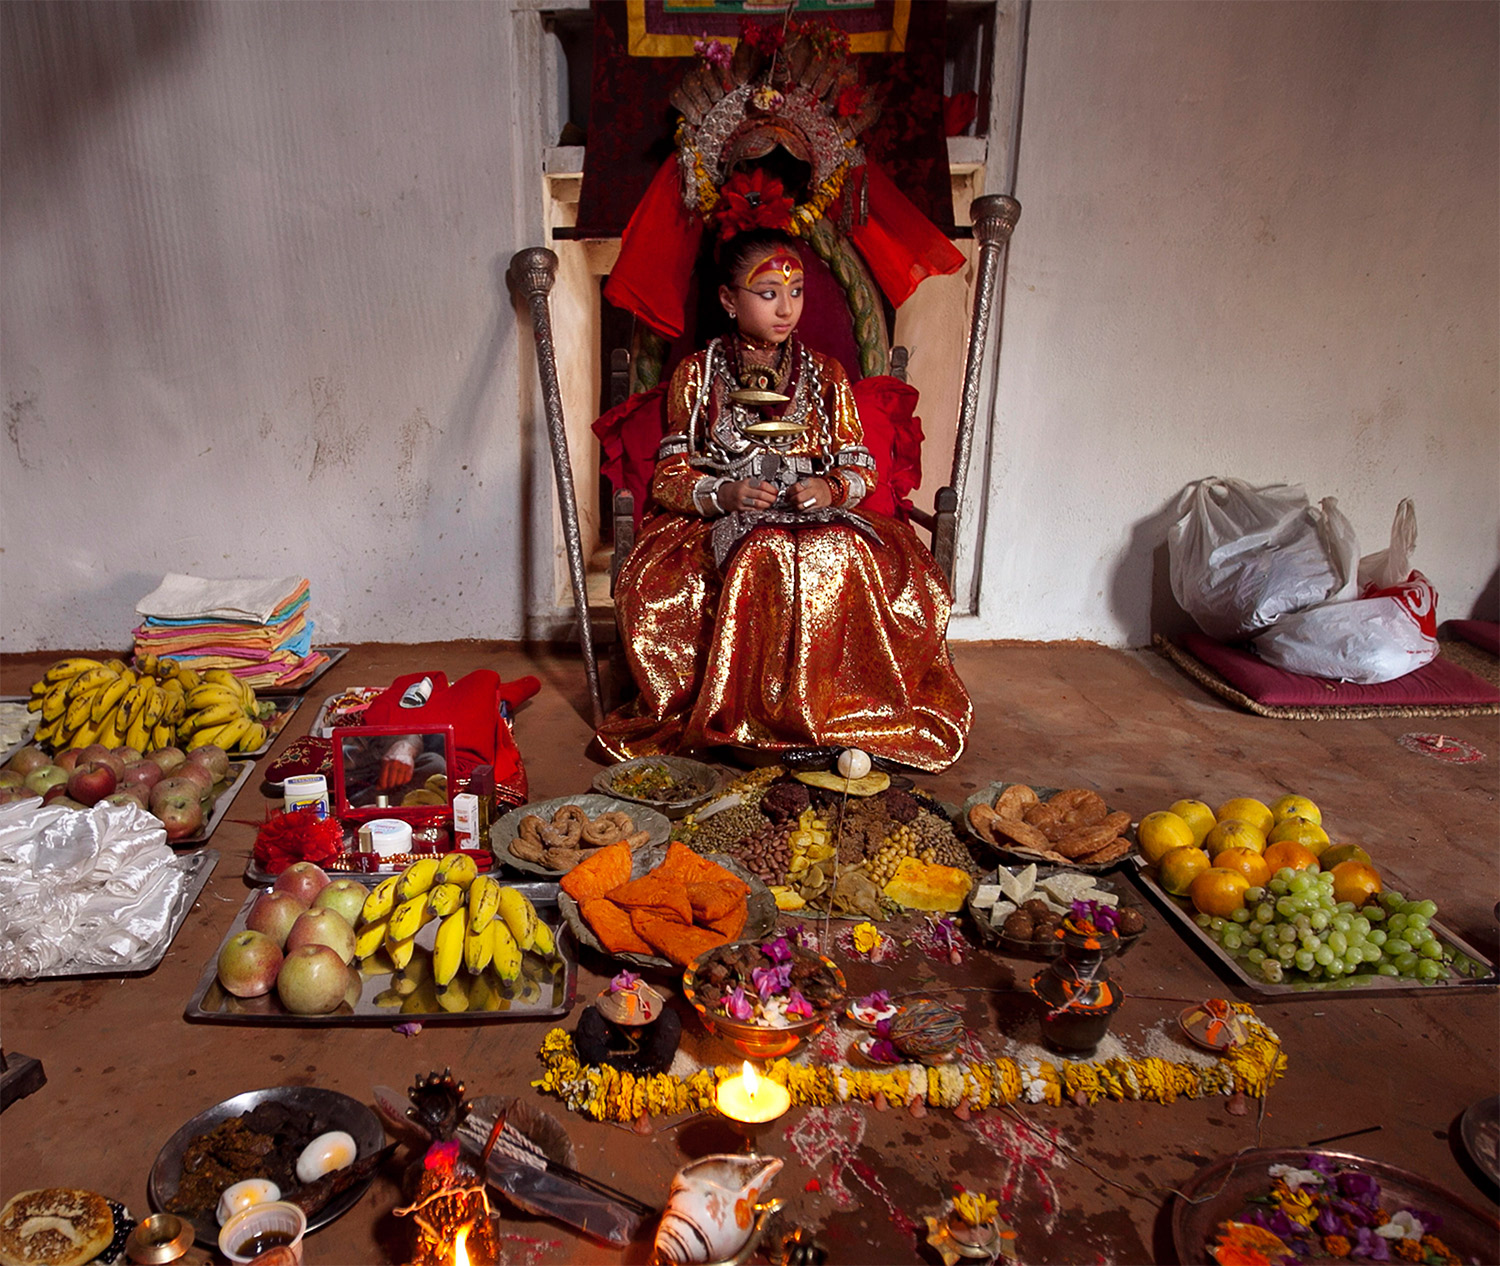 The Kumari Samita Bajracharya with offerings from worshippers, Patan, Nepal, 2011. Narendra Shrestha / EPA / Corbis Images